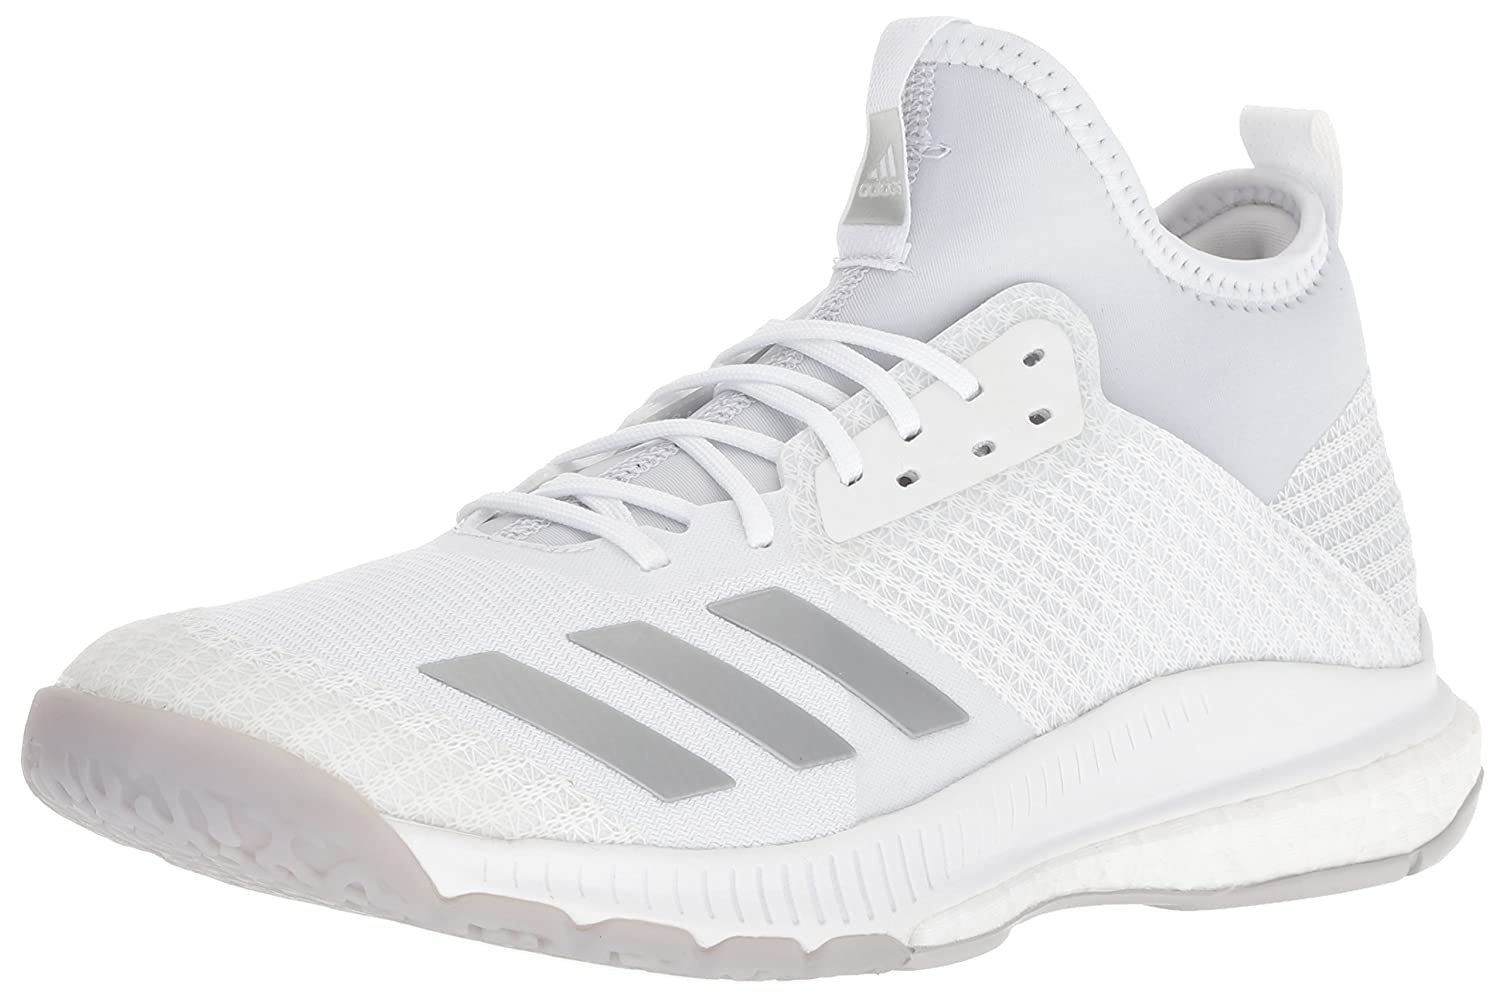 adidas Women's Crazyflight X 2 Mid Volleyball Shoe B077X57NQP 6 M US|White/Silver Metallic/Grey